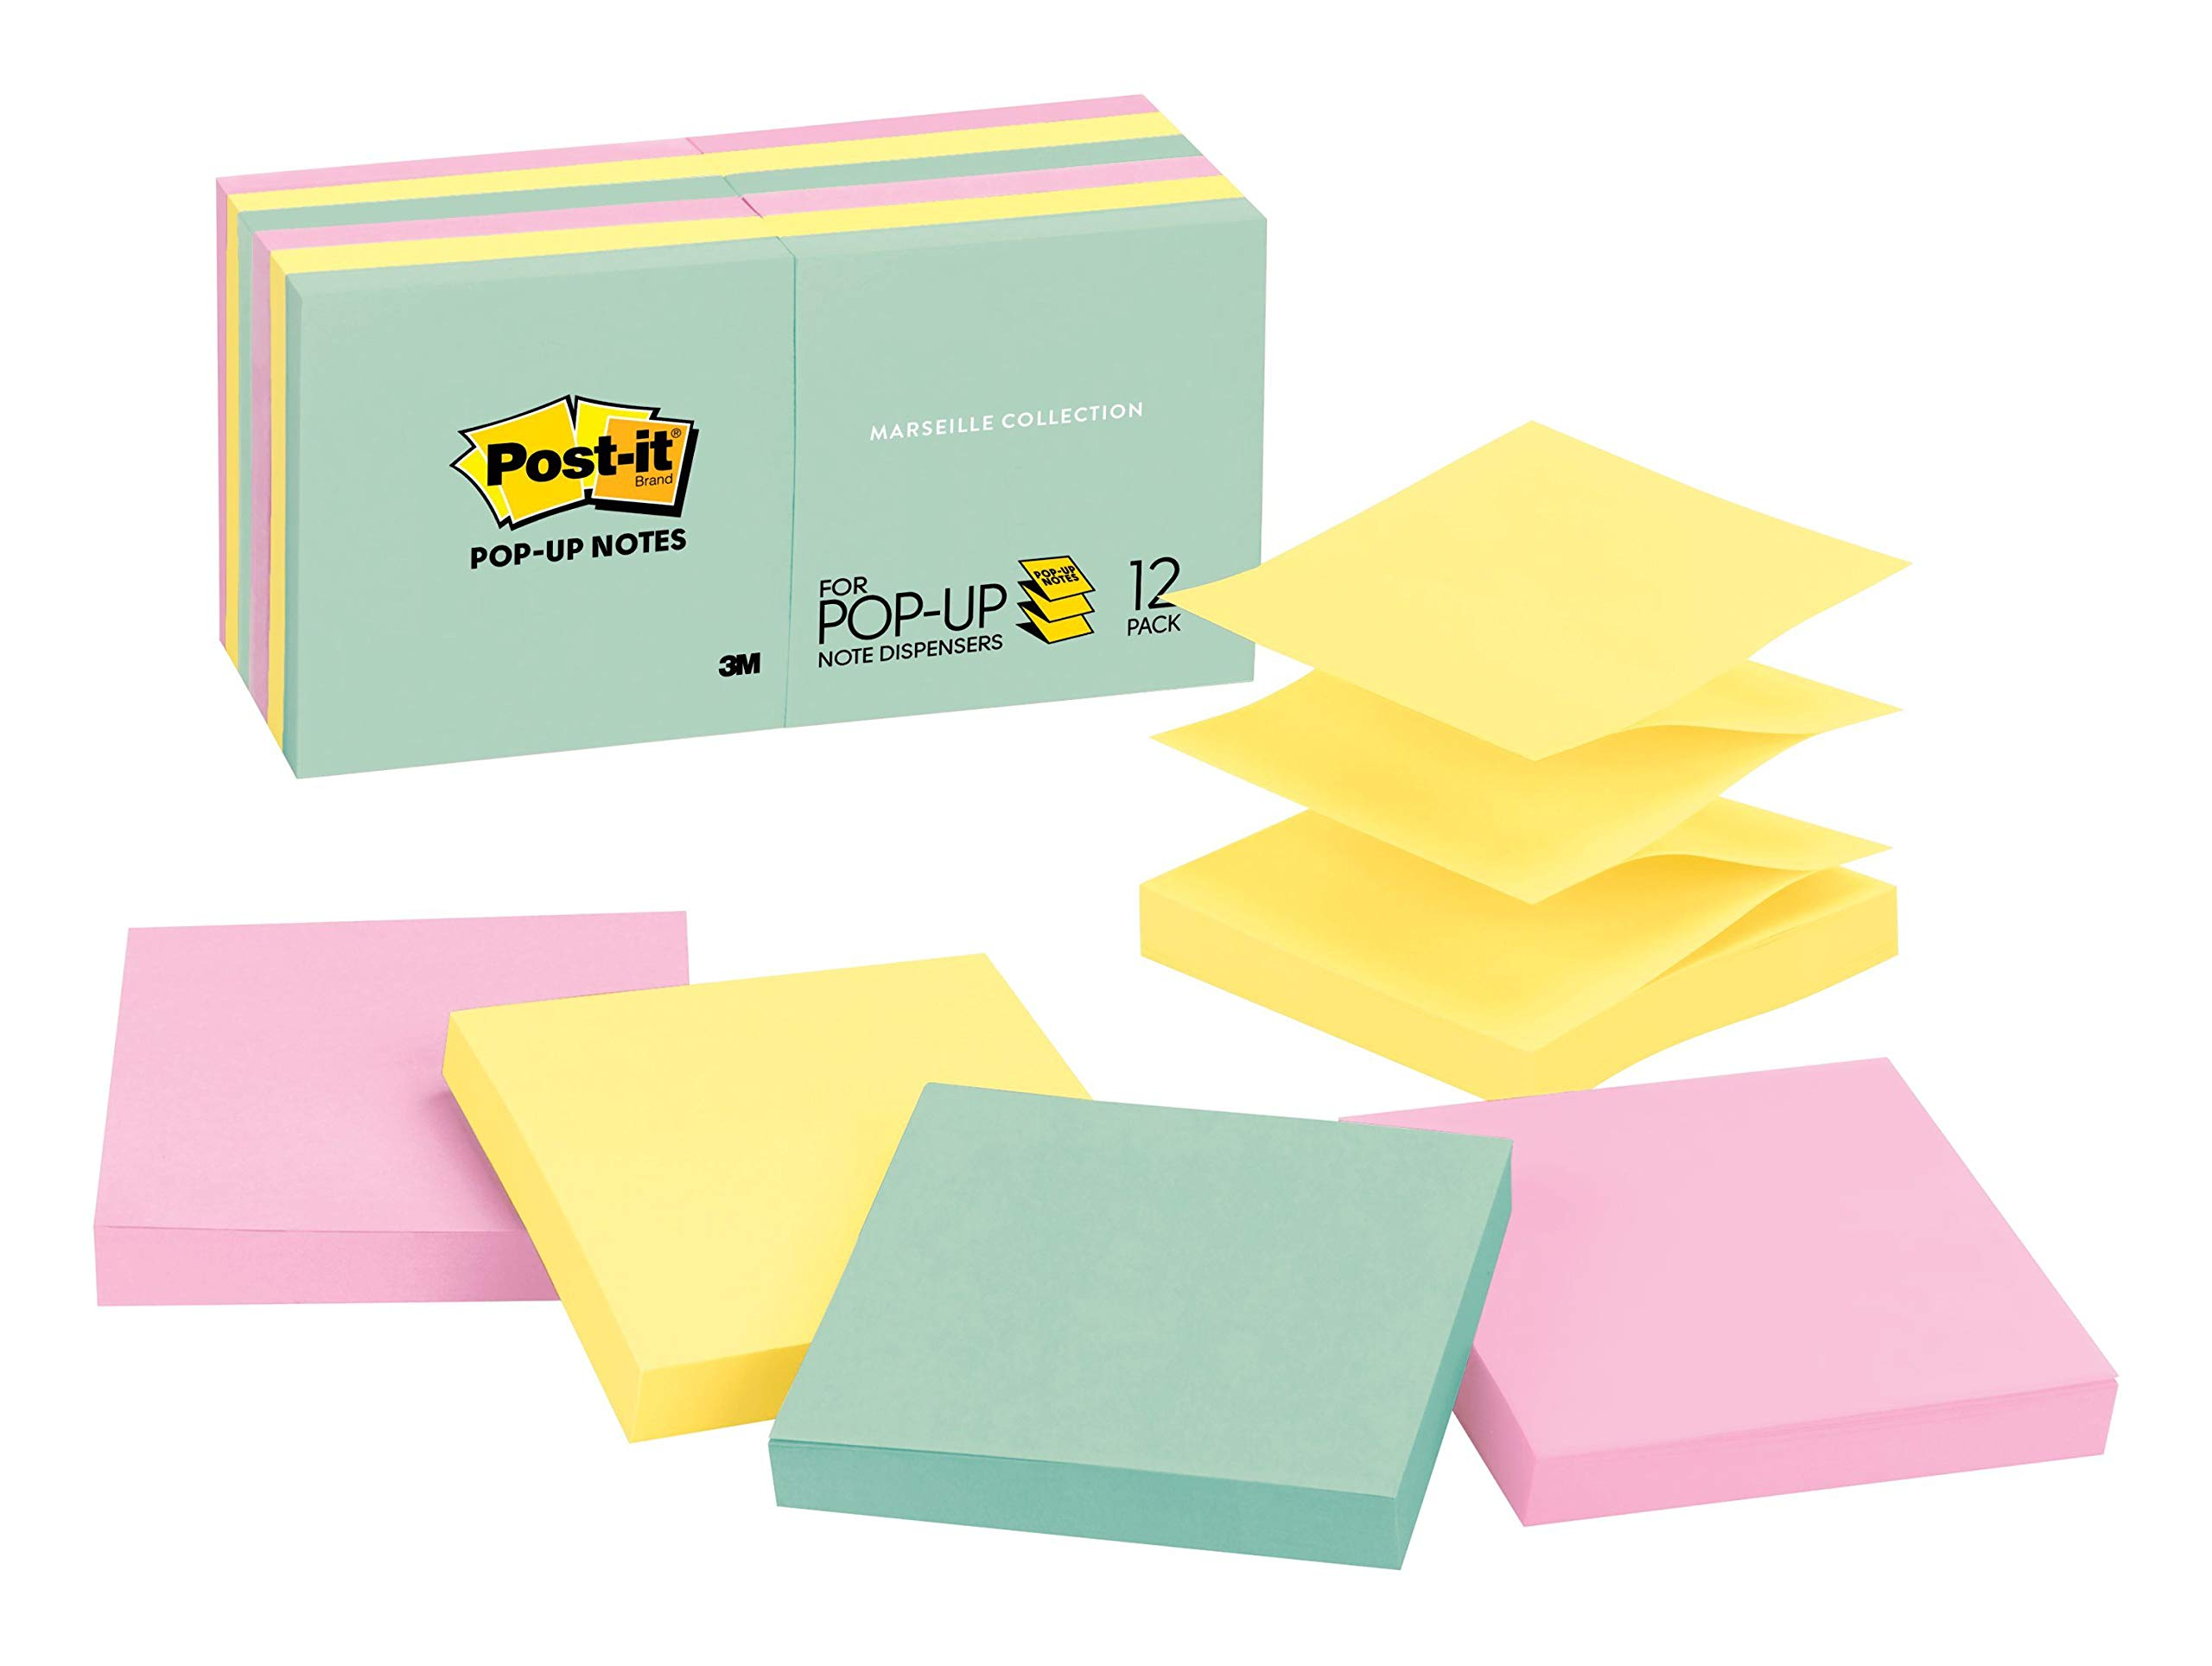 Post-it Pop-up Notes, Green, Pink, Canary Yellow, Blues, Designed for Pop-up Note Dispensers, Great for Reminders, 3 in. x 3 in, 12 Pads/Pack, 100 Sheets/Pad (R330-12AP) by Post-it